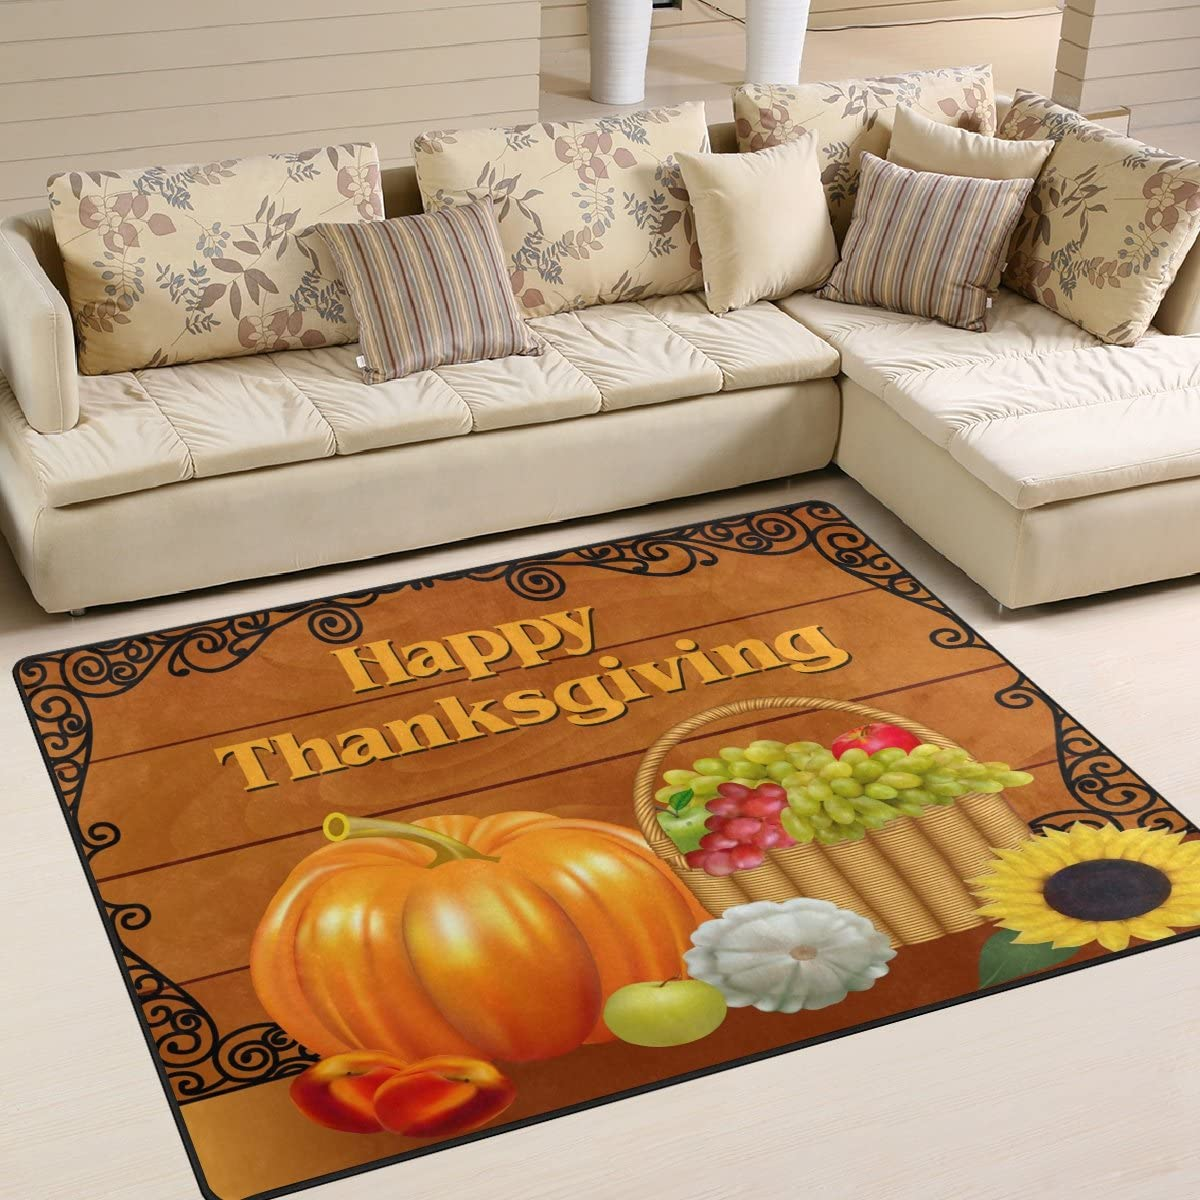 ALAZA Fall Complete Free Shipping Harvest Pumpkin Thanksgiving Area Mat Li 70% OFF Outlet for Rugs Rug